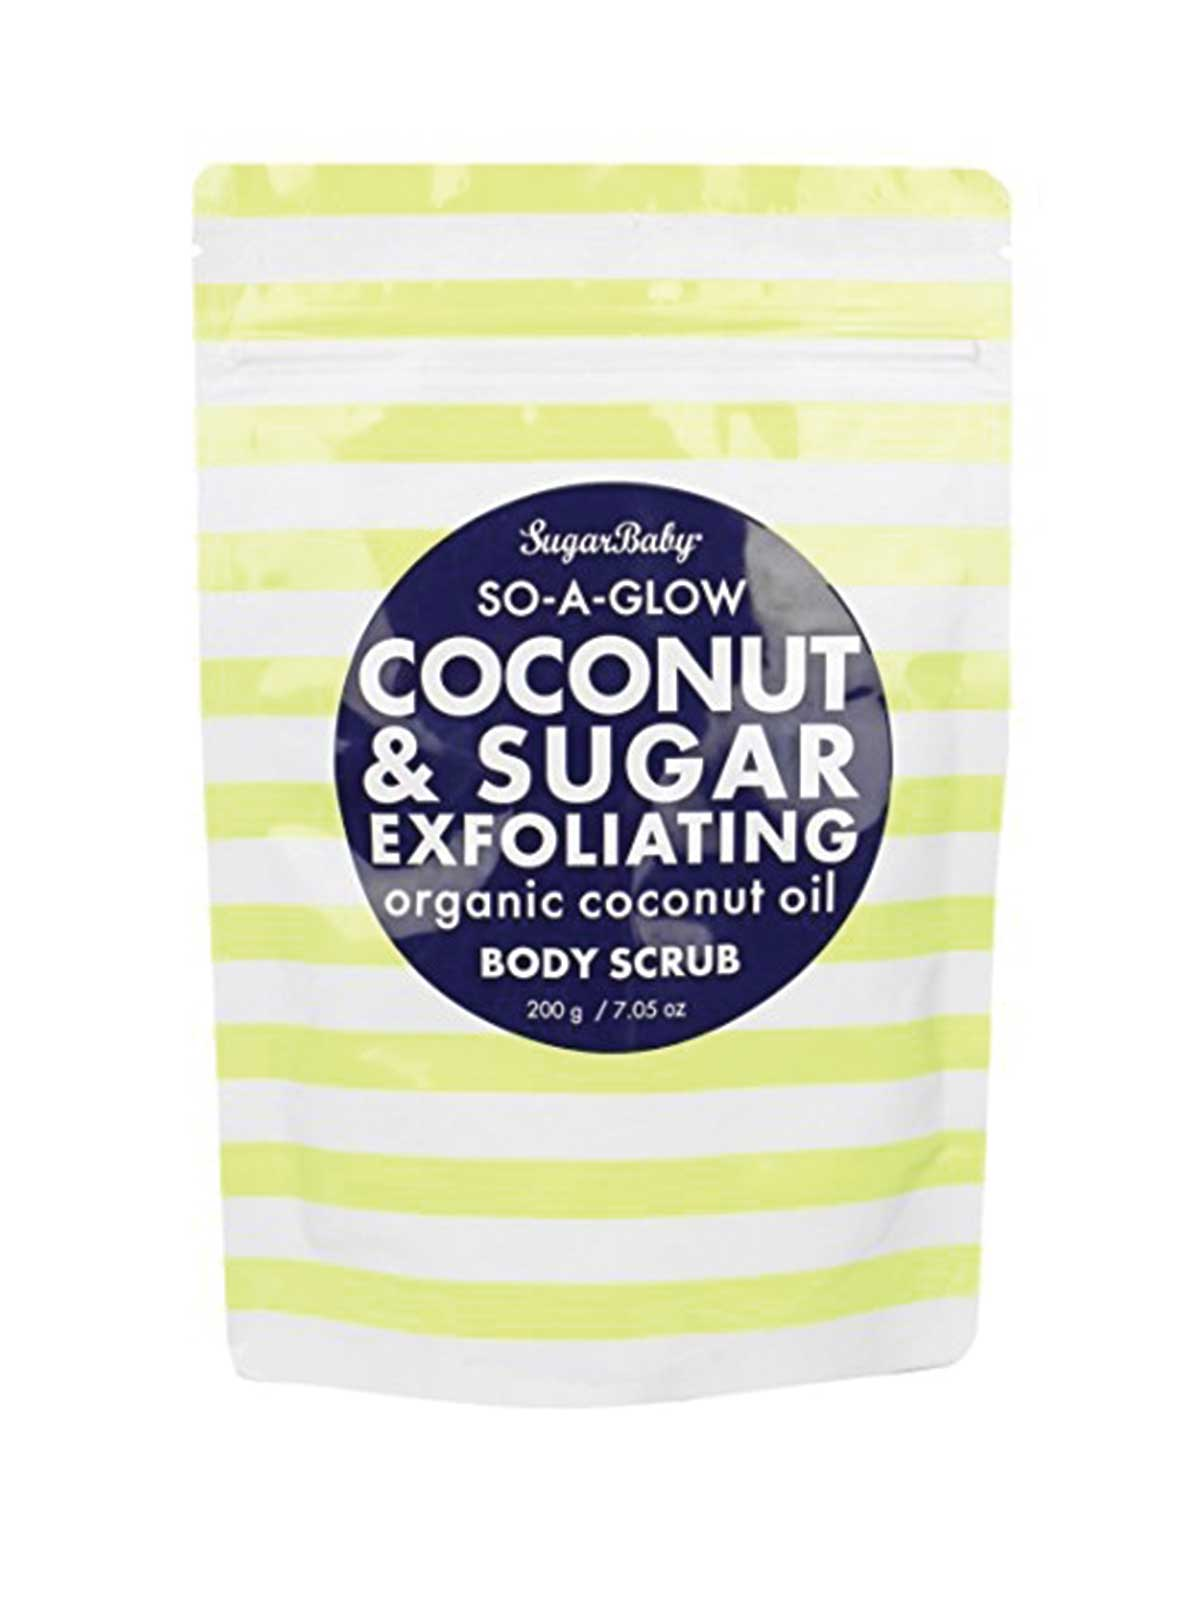 SO-A-GLOW BODY SCRUB